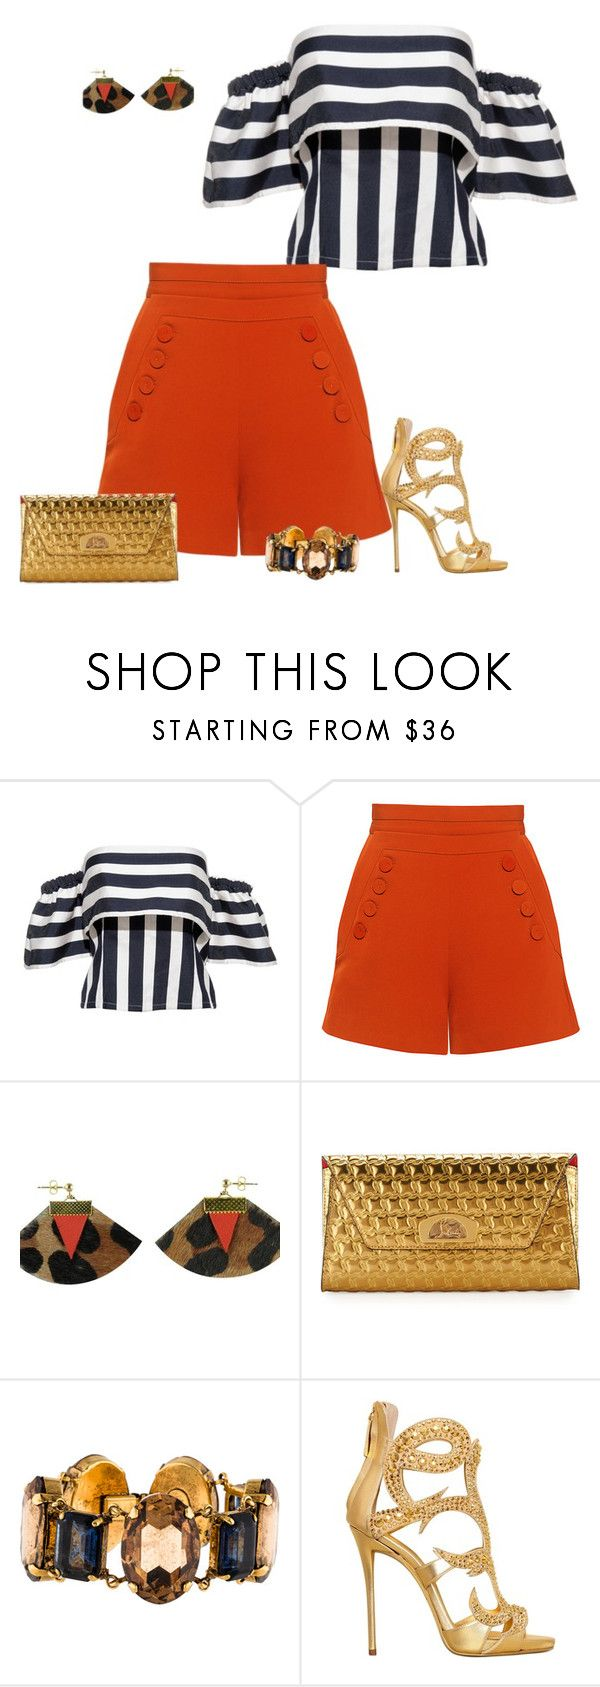 """Ms. Paula!"" by brandena ❤ liked on Polyvore featuring Finders Keepers, Charly James, Christian Louboutin, Erickson Beamon and Giuseppe Zanotti"